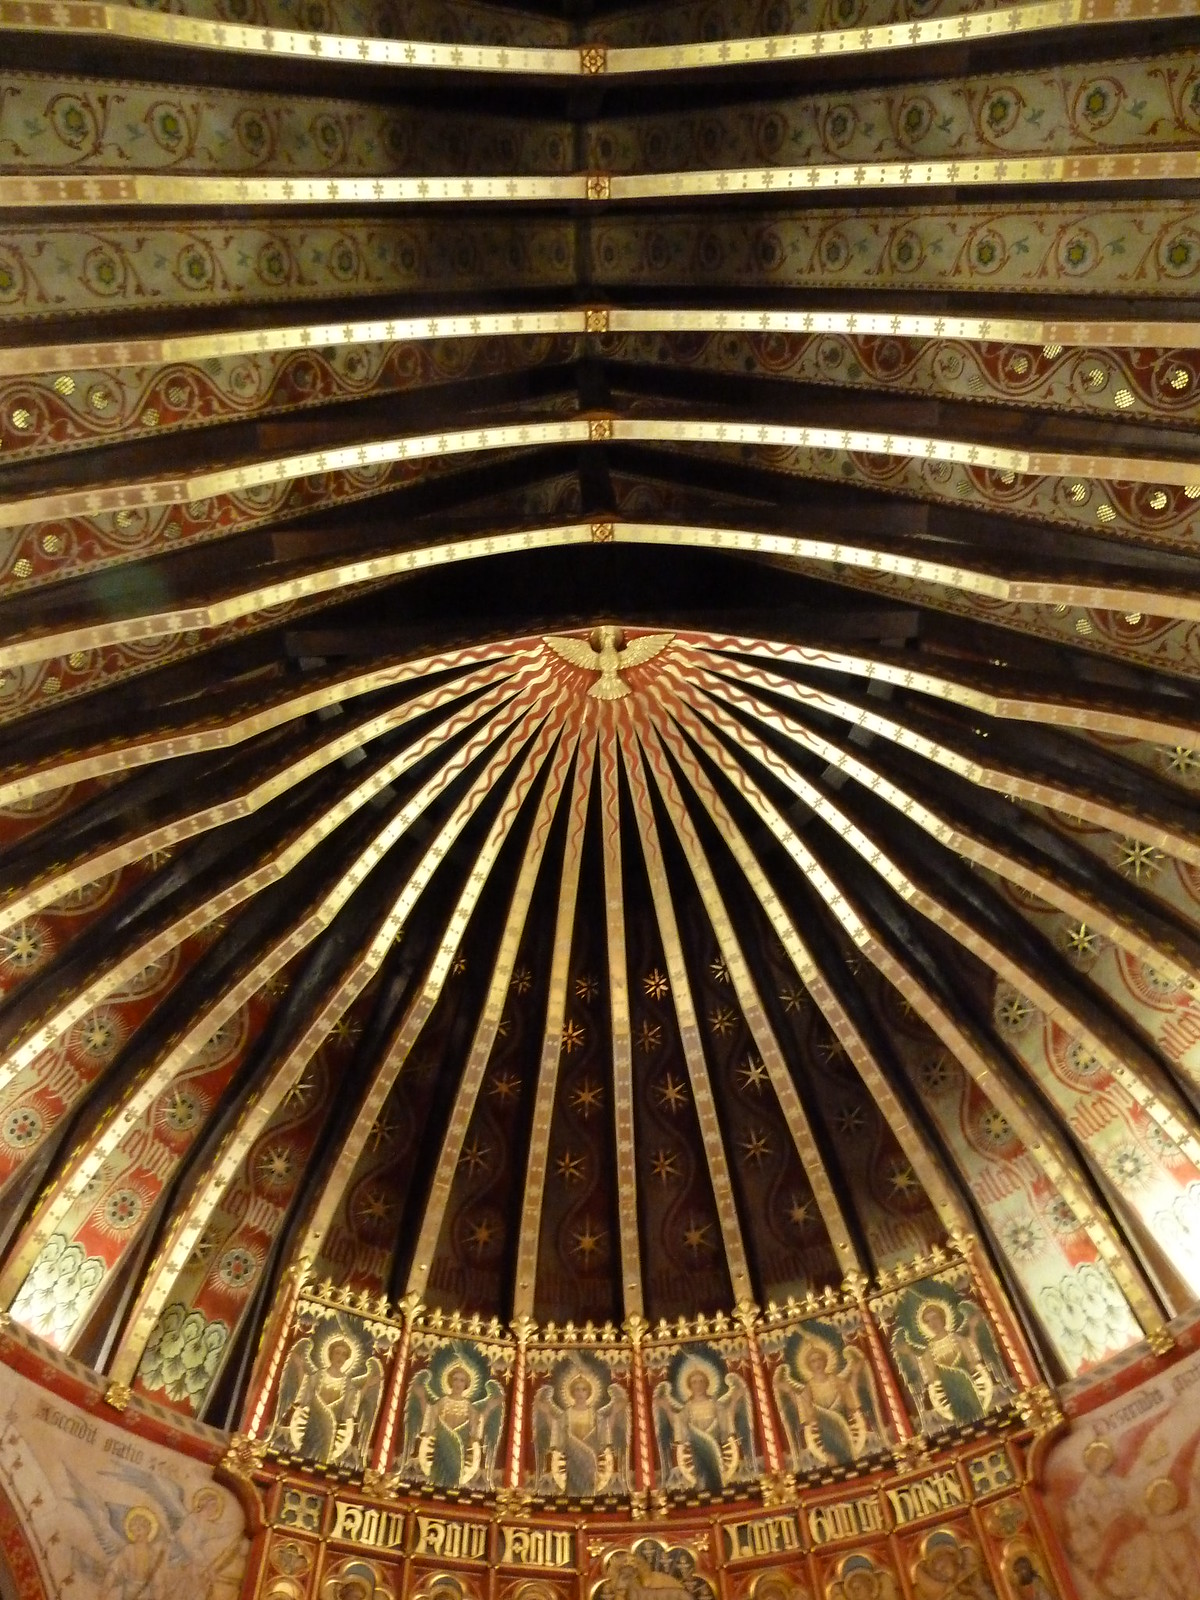 Milford to Godalming Decorated timber roof, St Peters Church, Hascombe.